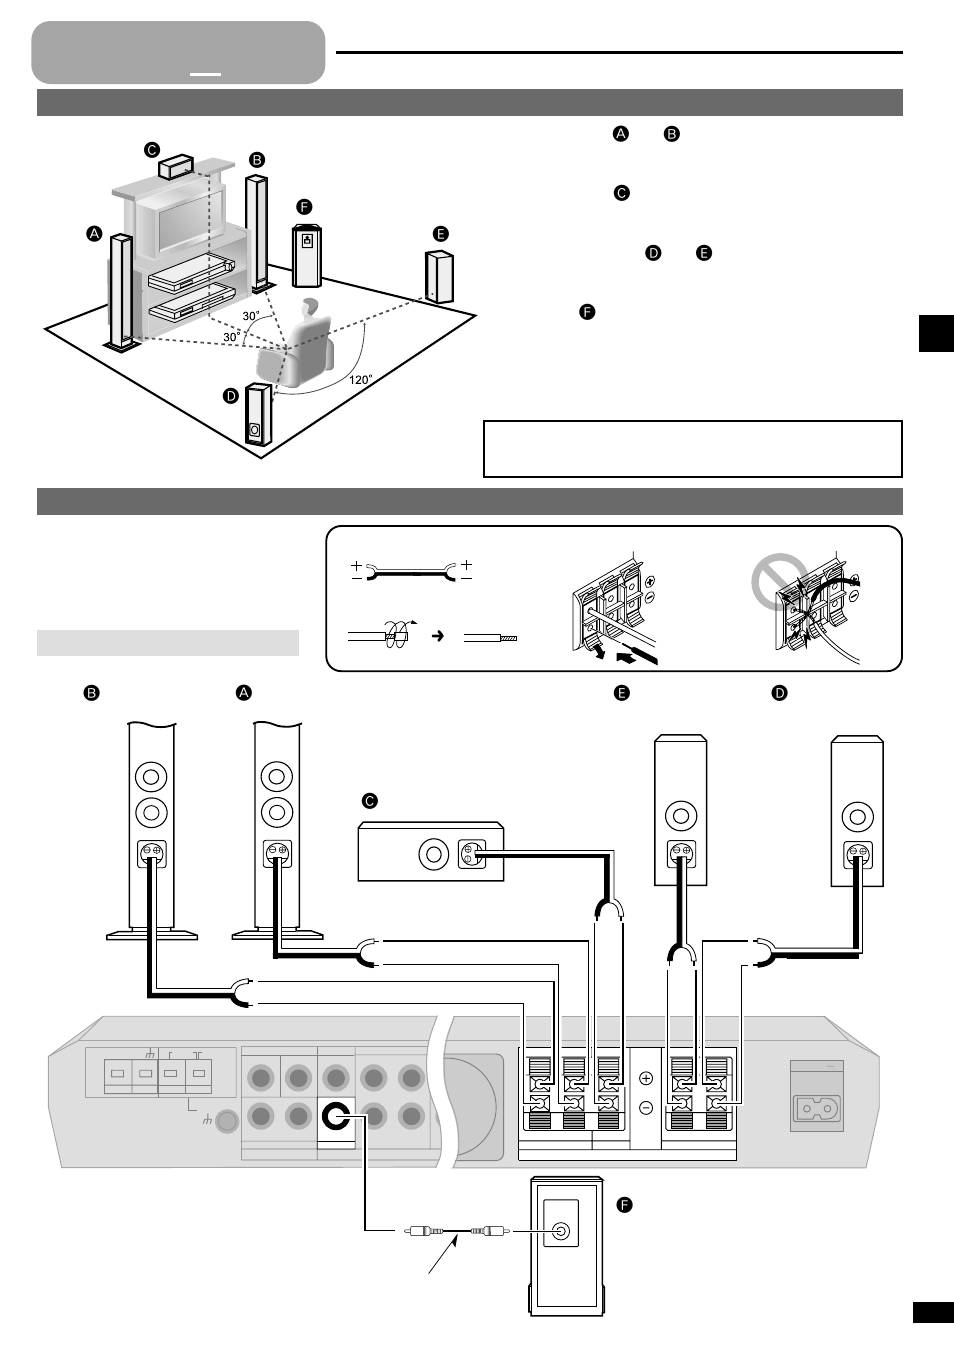 medium resolution of step 1 speaker connections step speaker connections panasonic sa xr10 en user manual page 5 24